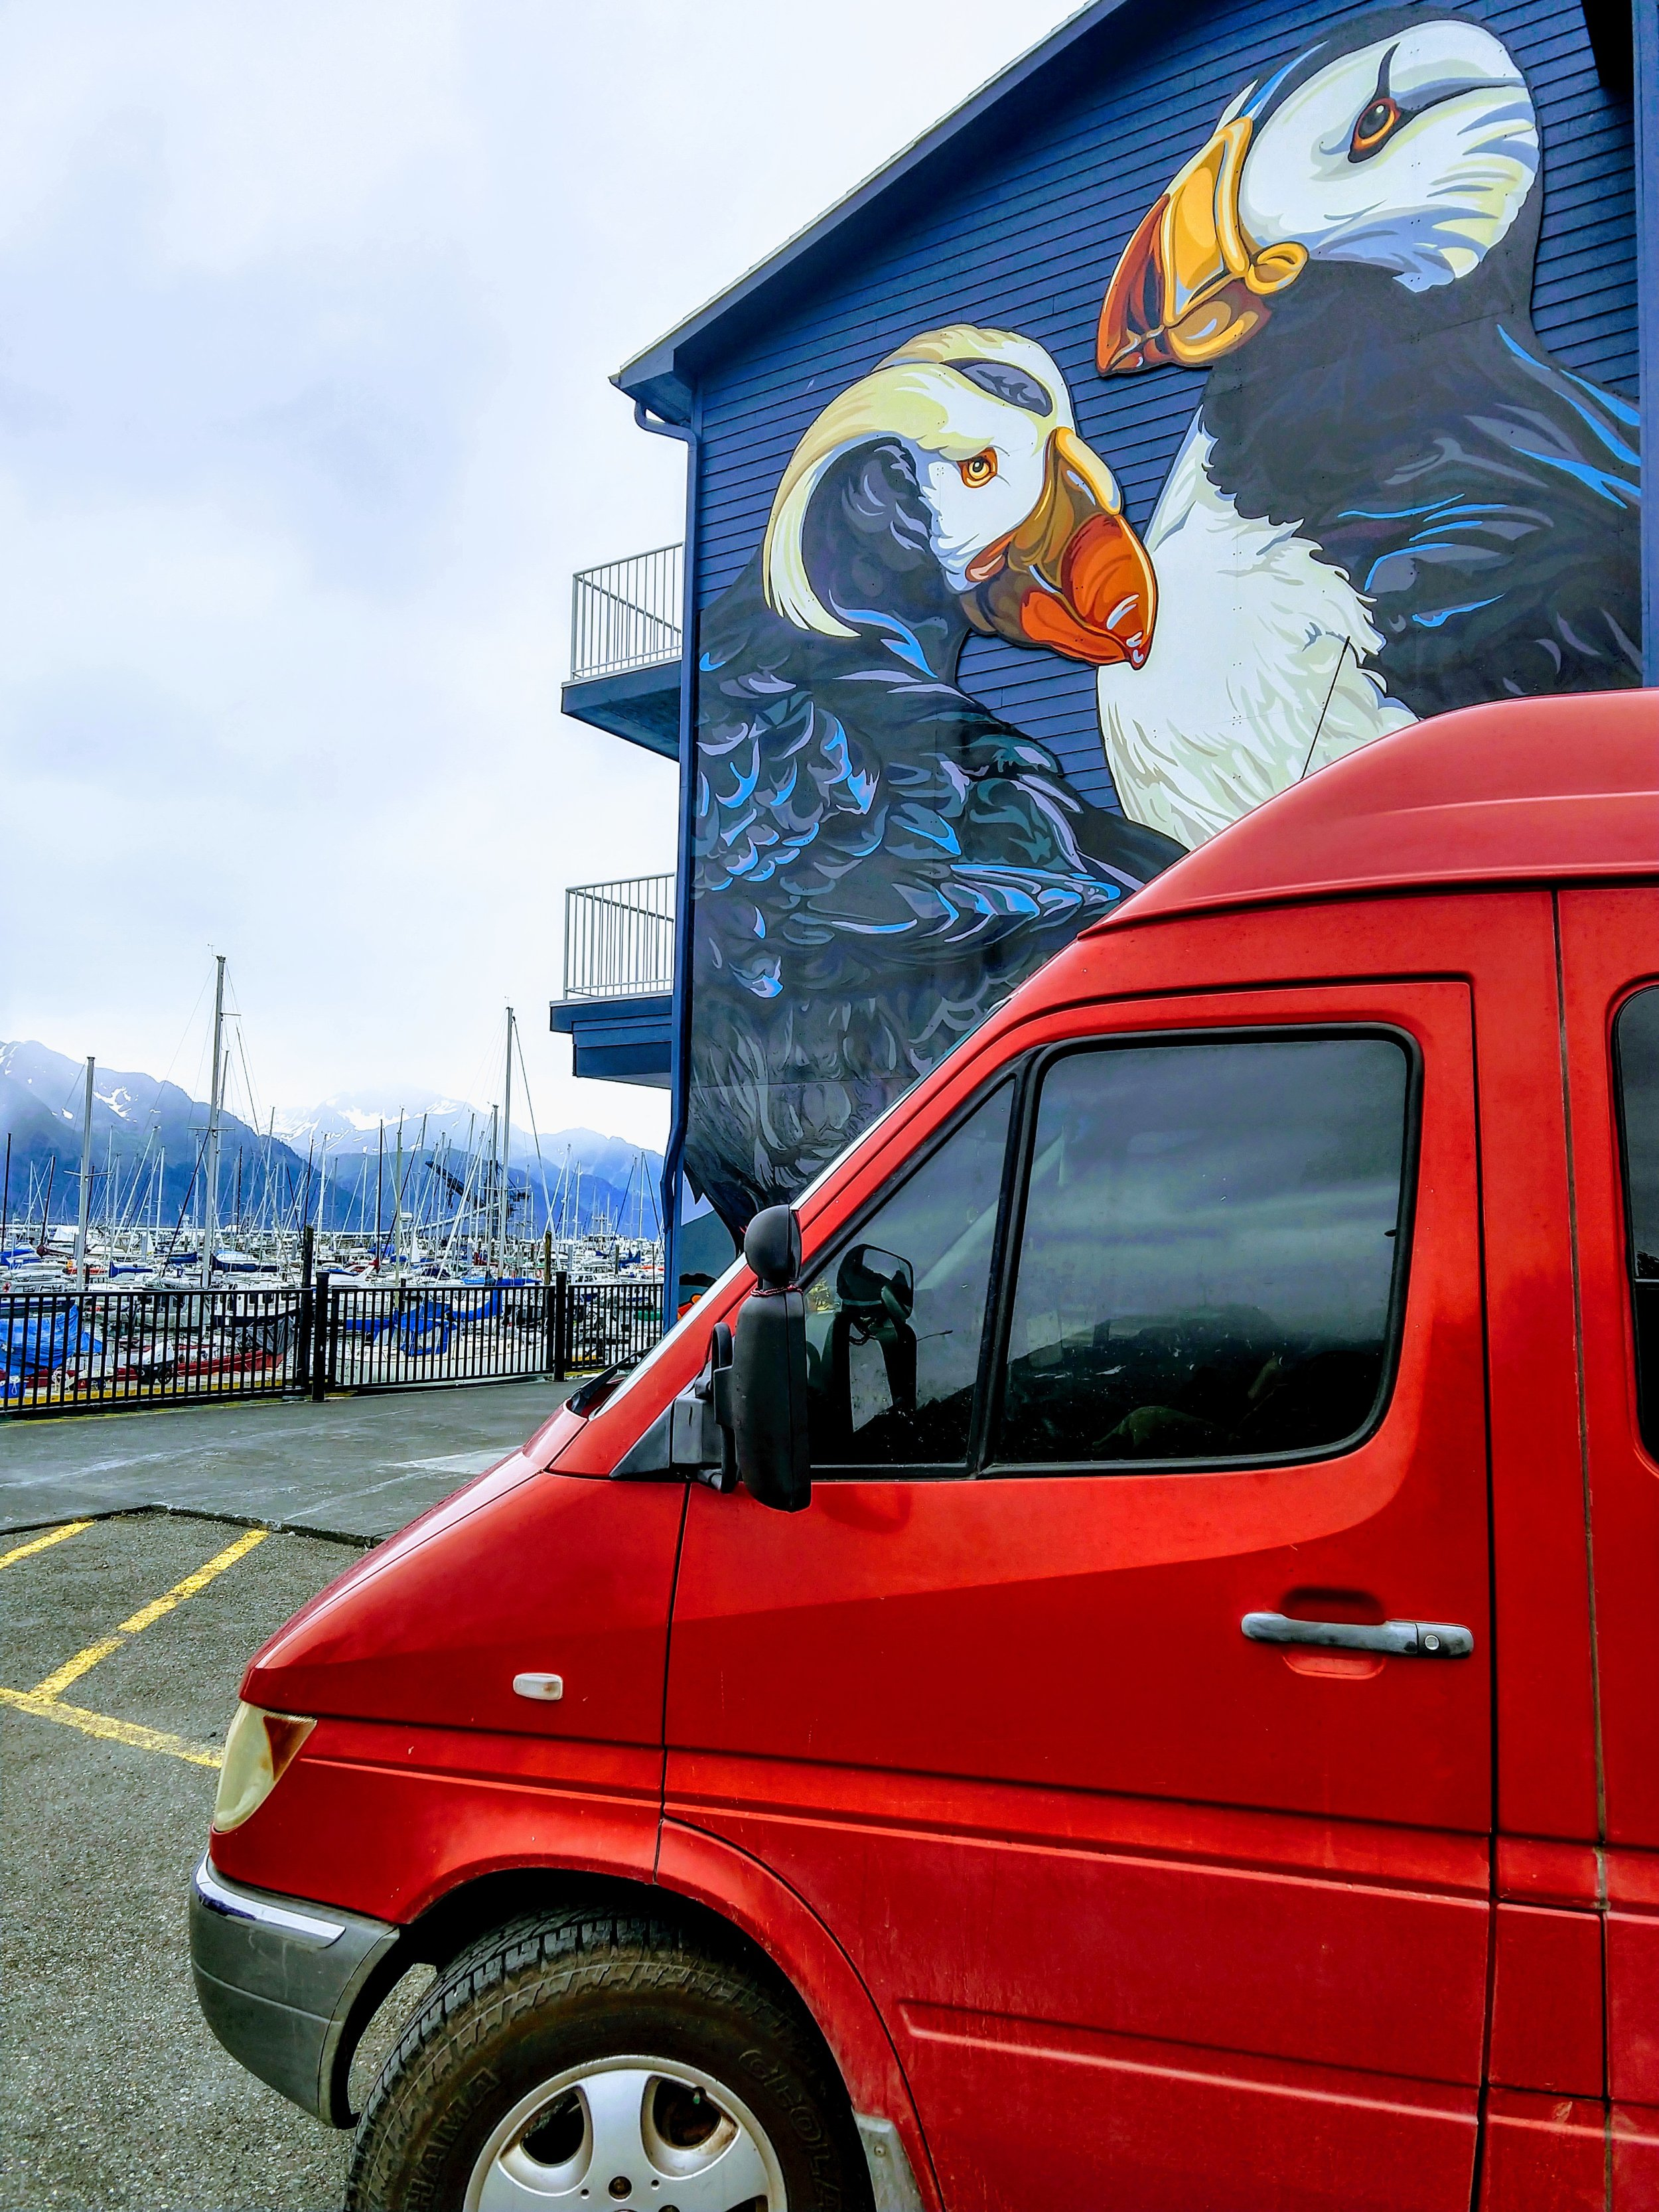 First Impressions are just that...Seward, AK